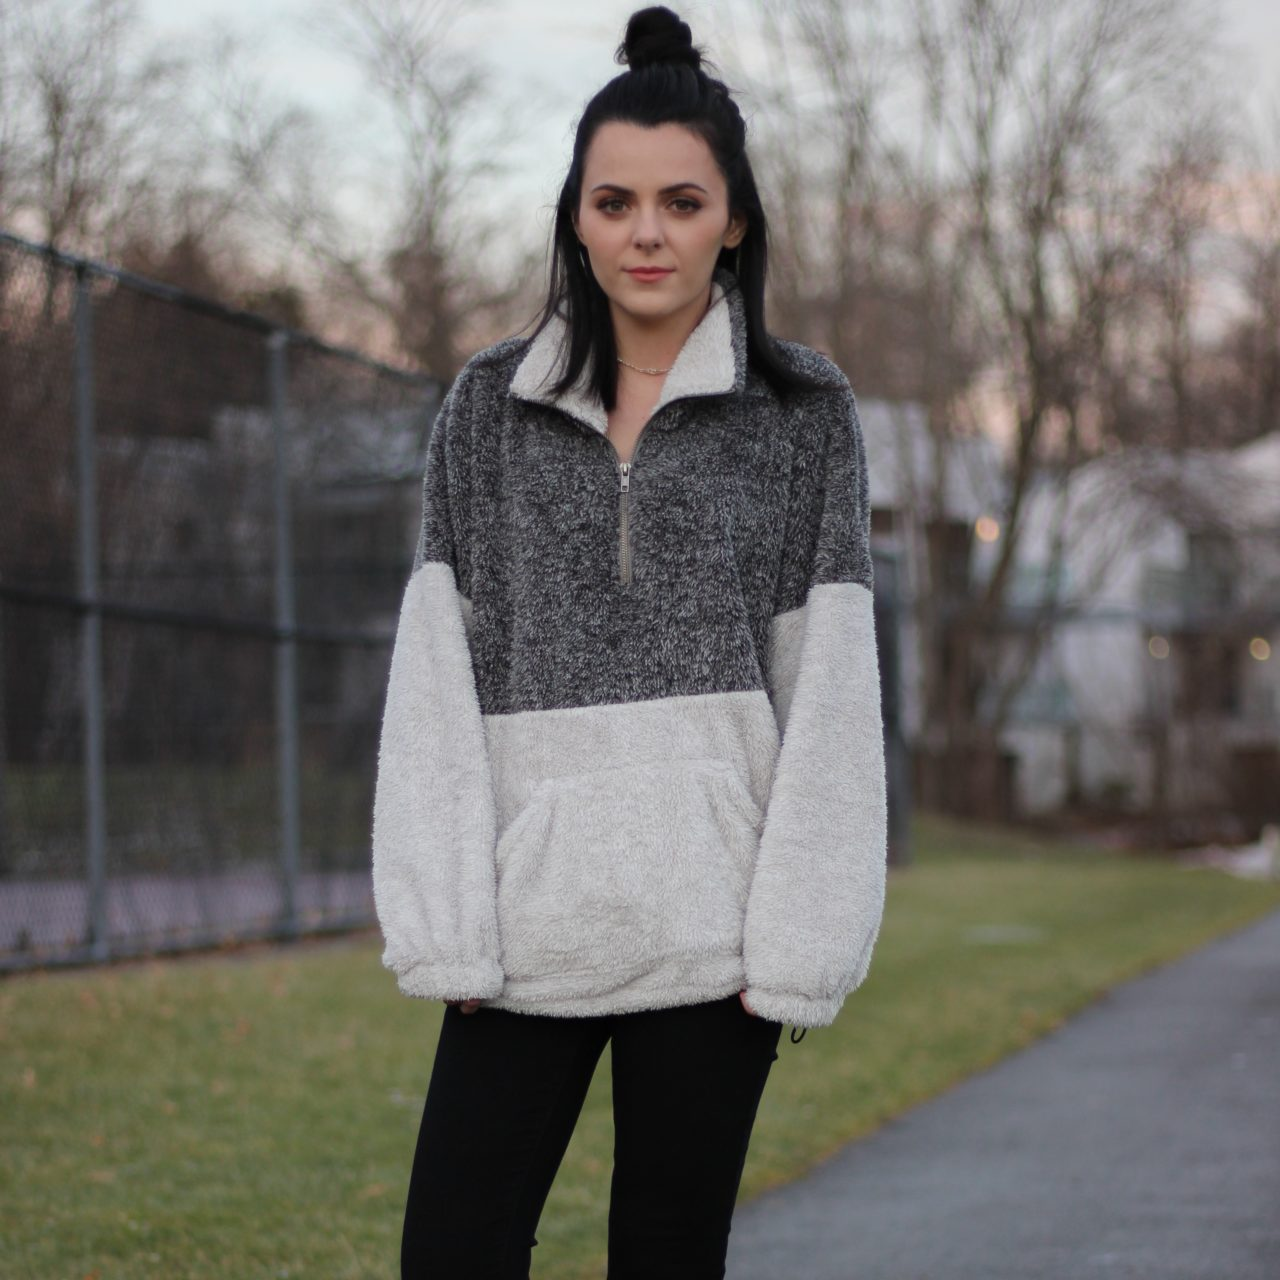 The Cozy Pullover